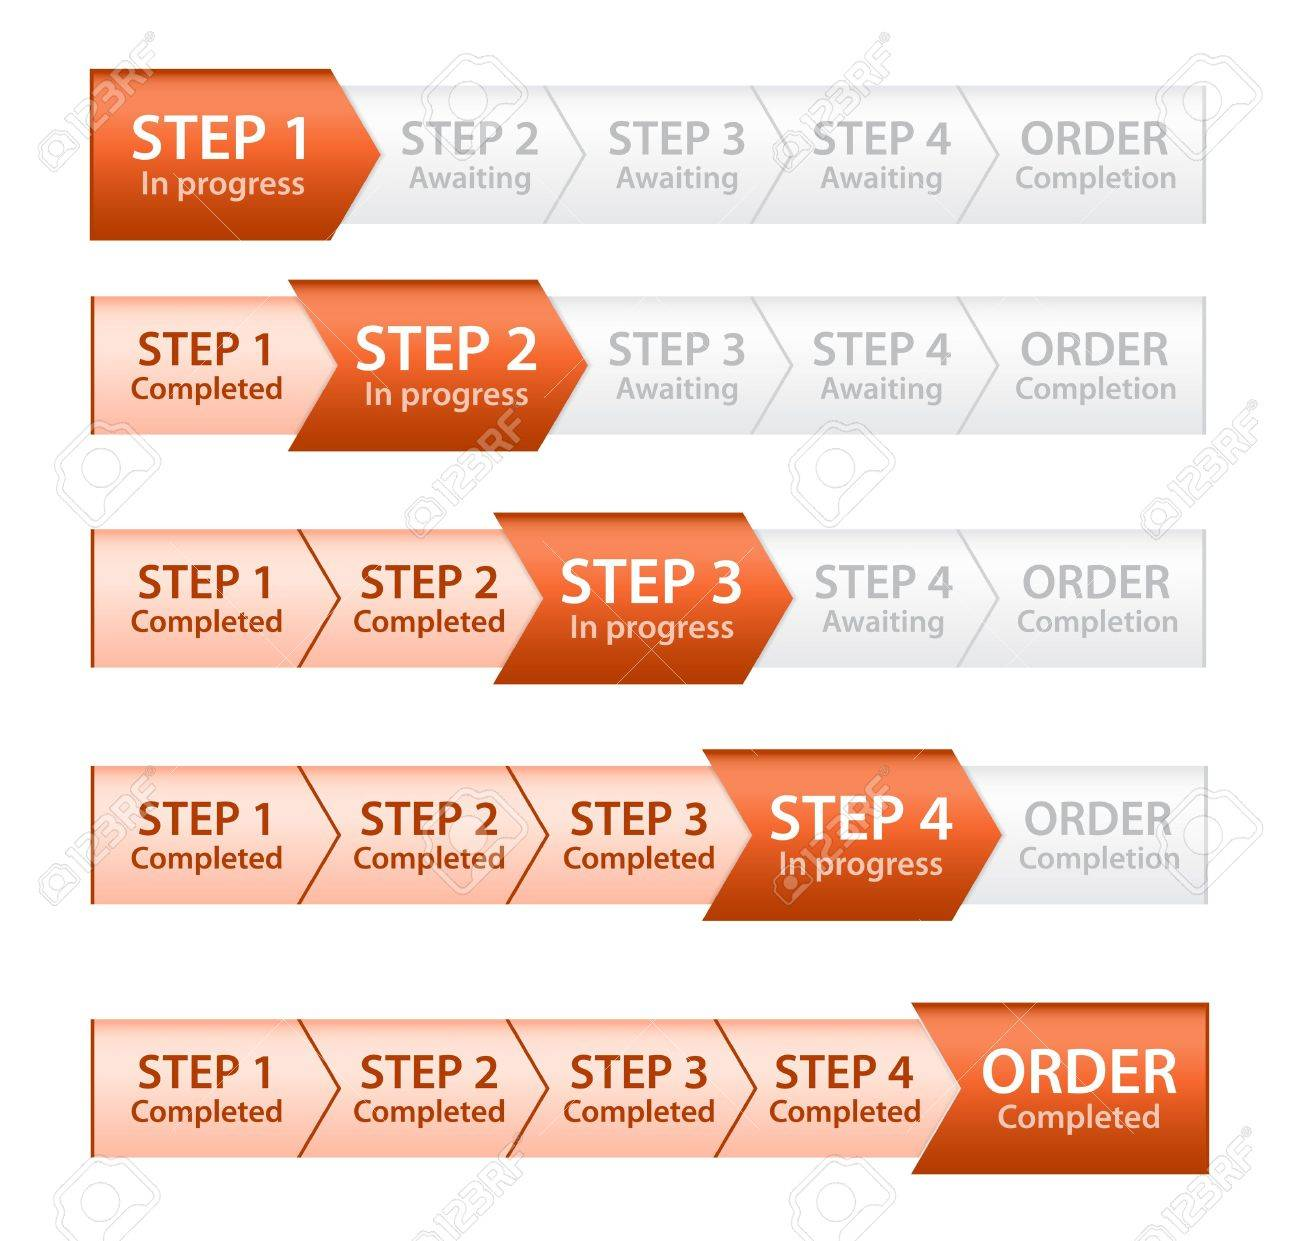 Orange Progress Bar for Order Process Stock Vector - 17209131